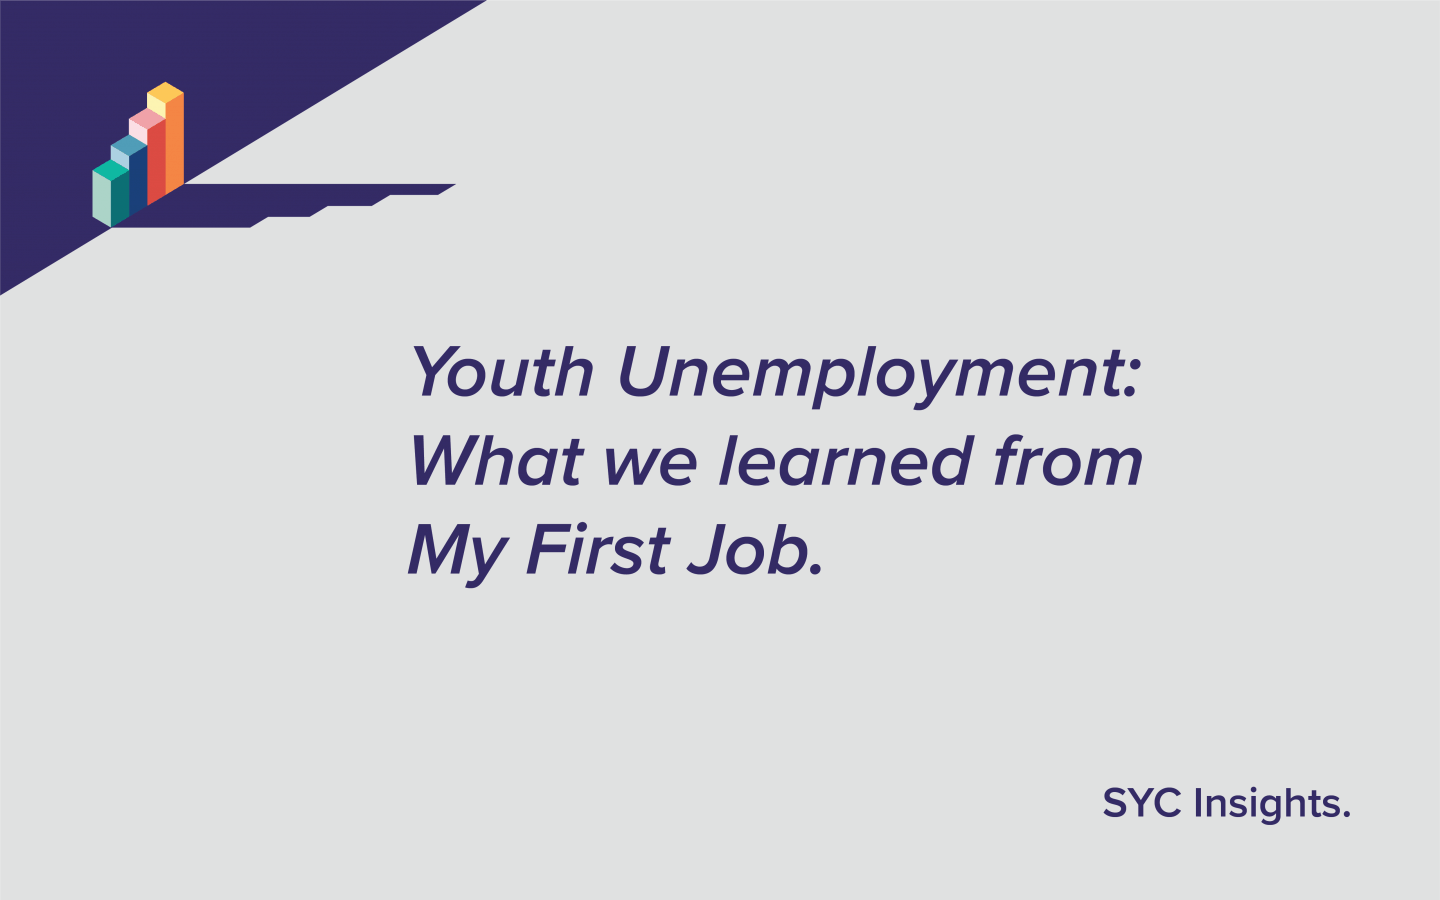 Youth Unemployment: What we learned from My First Job